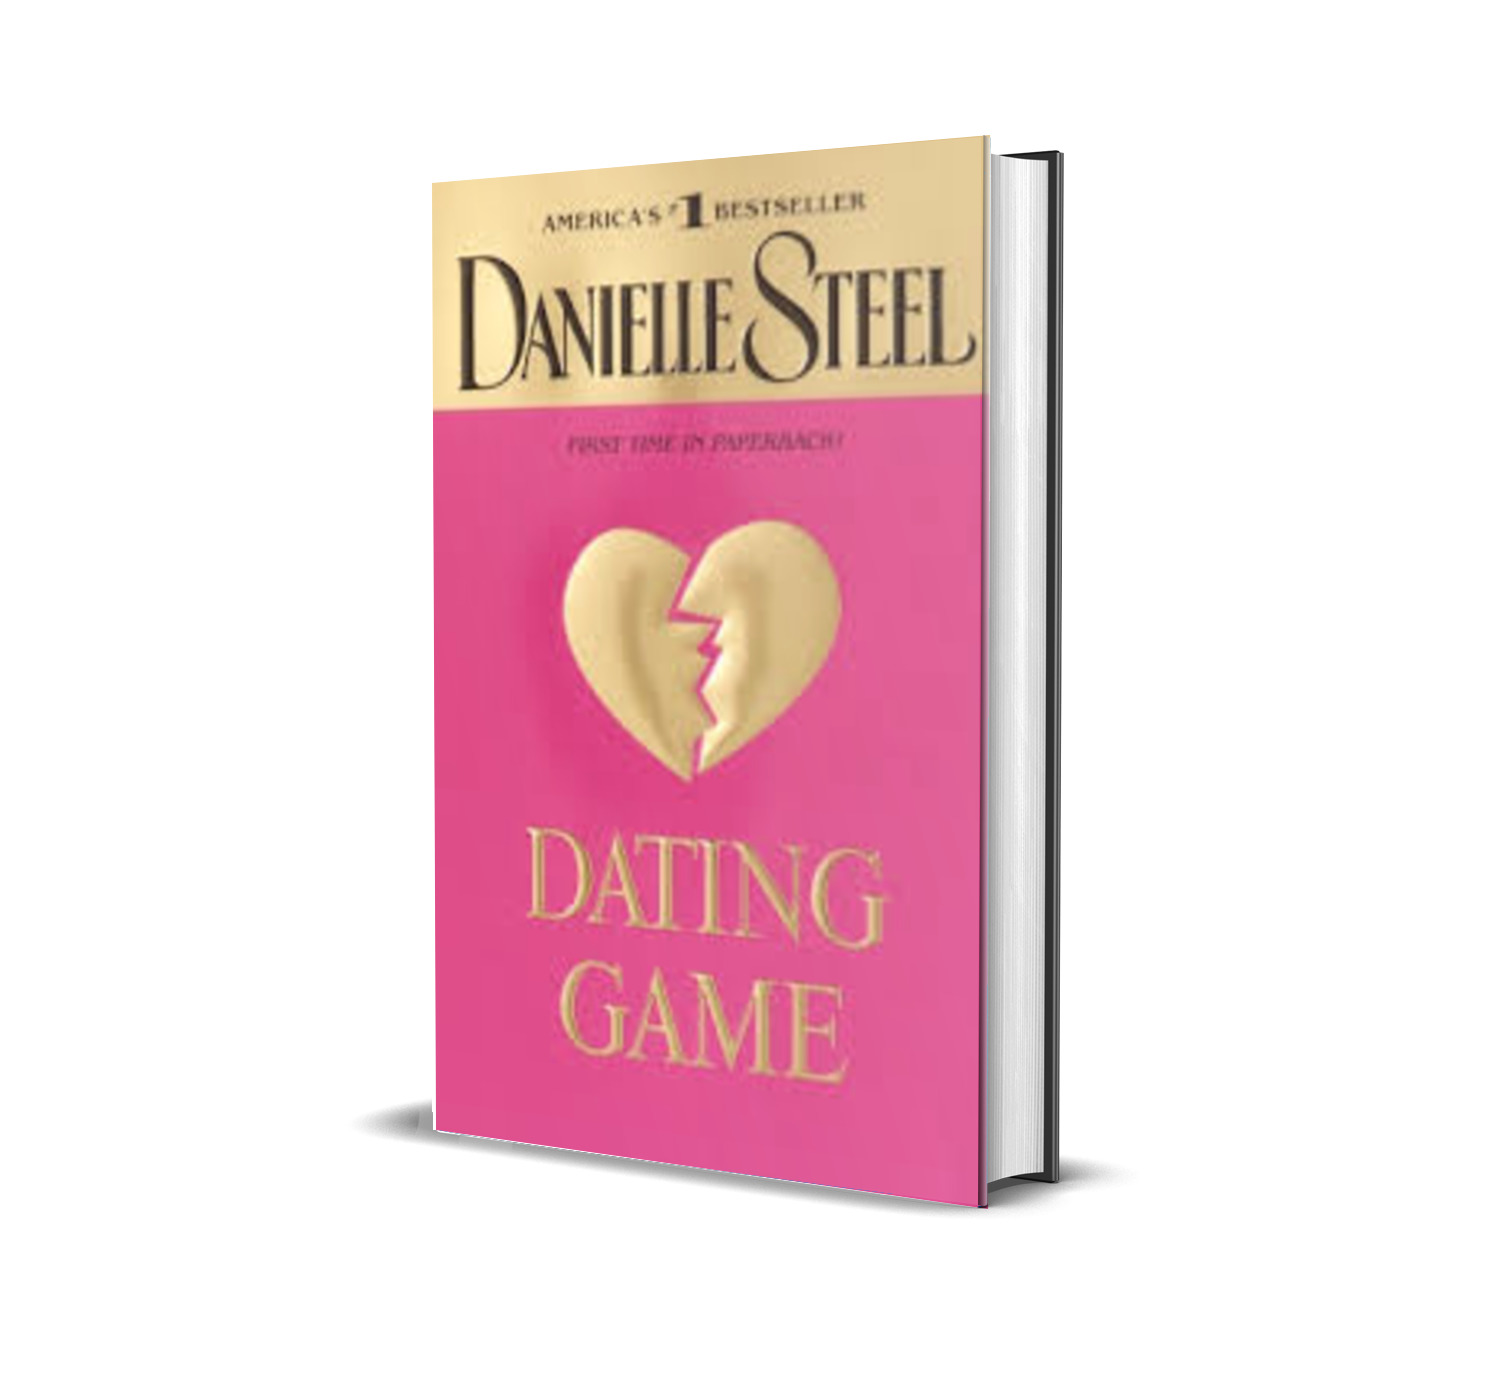 DATING GAME DANIELLE STEEL